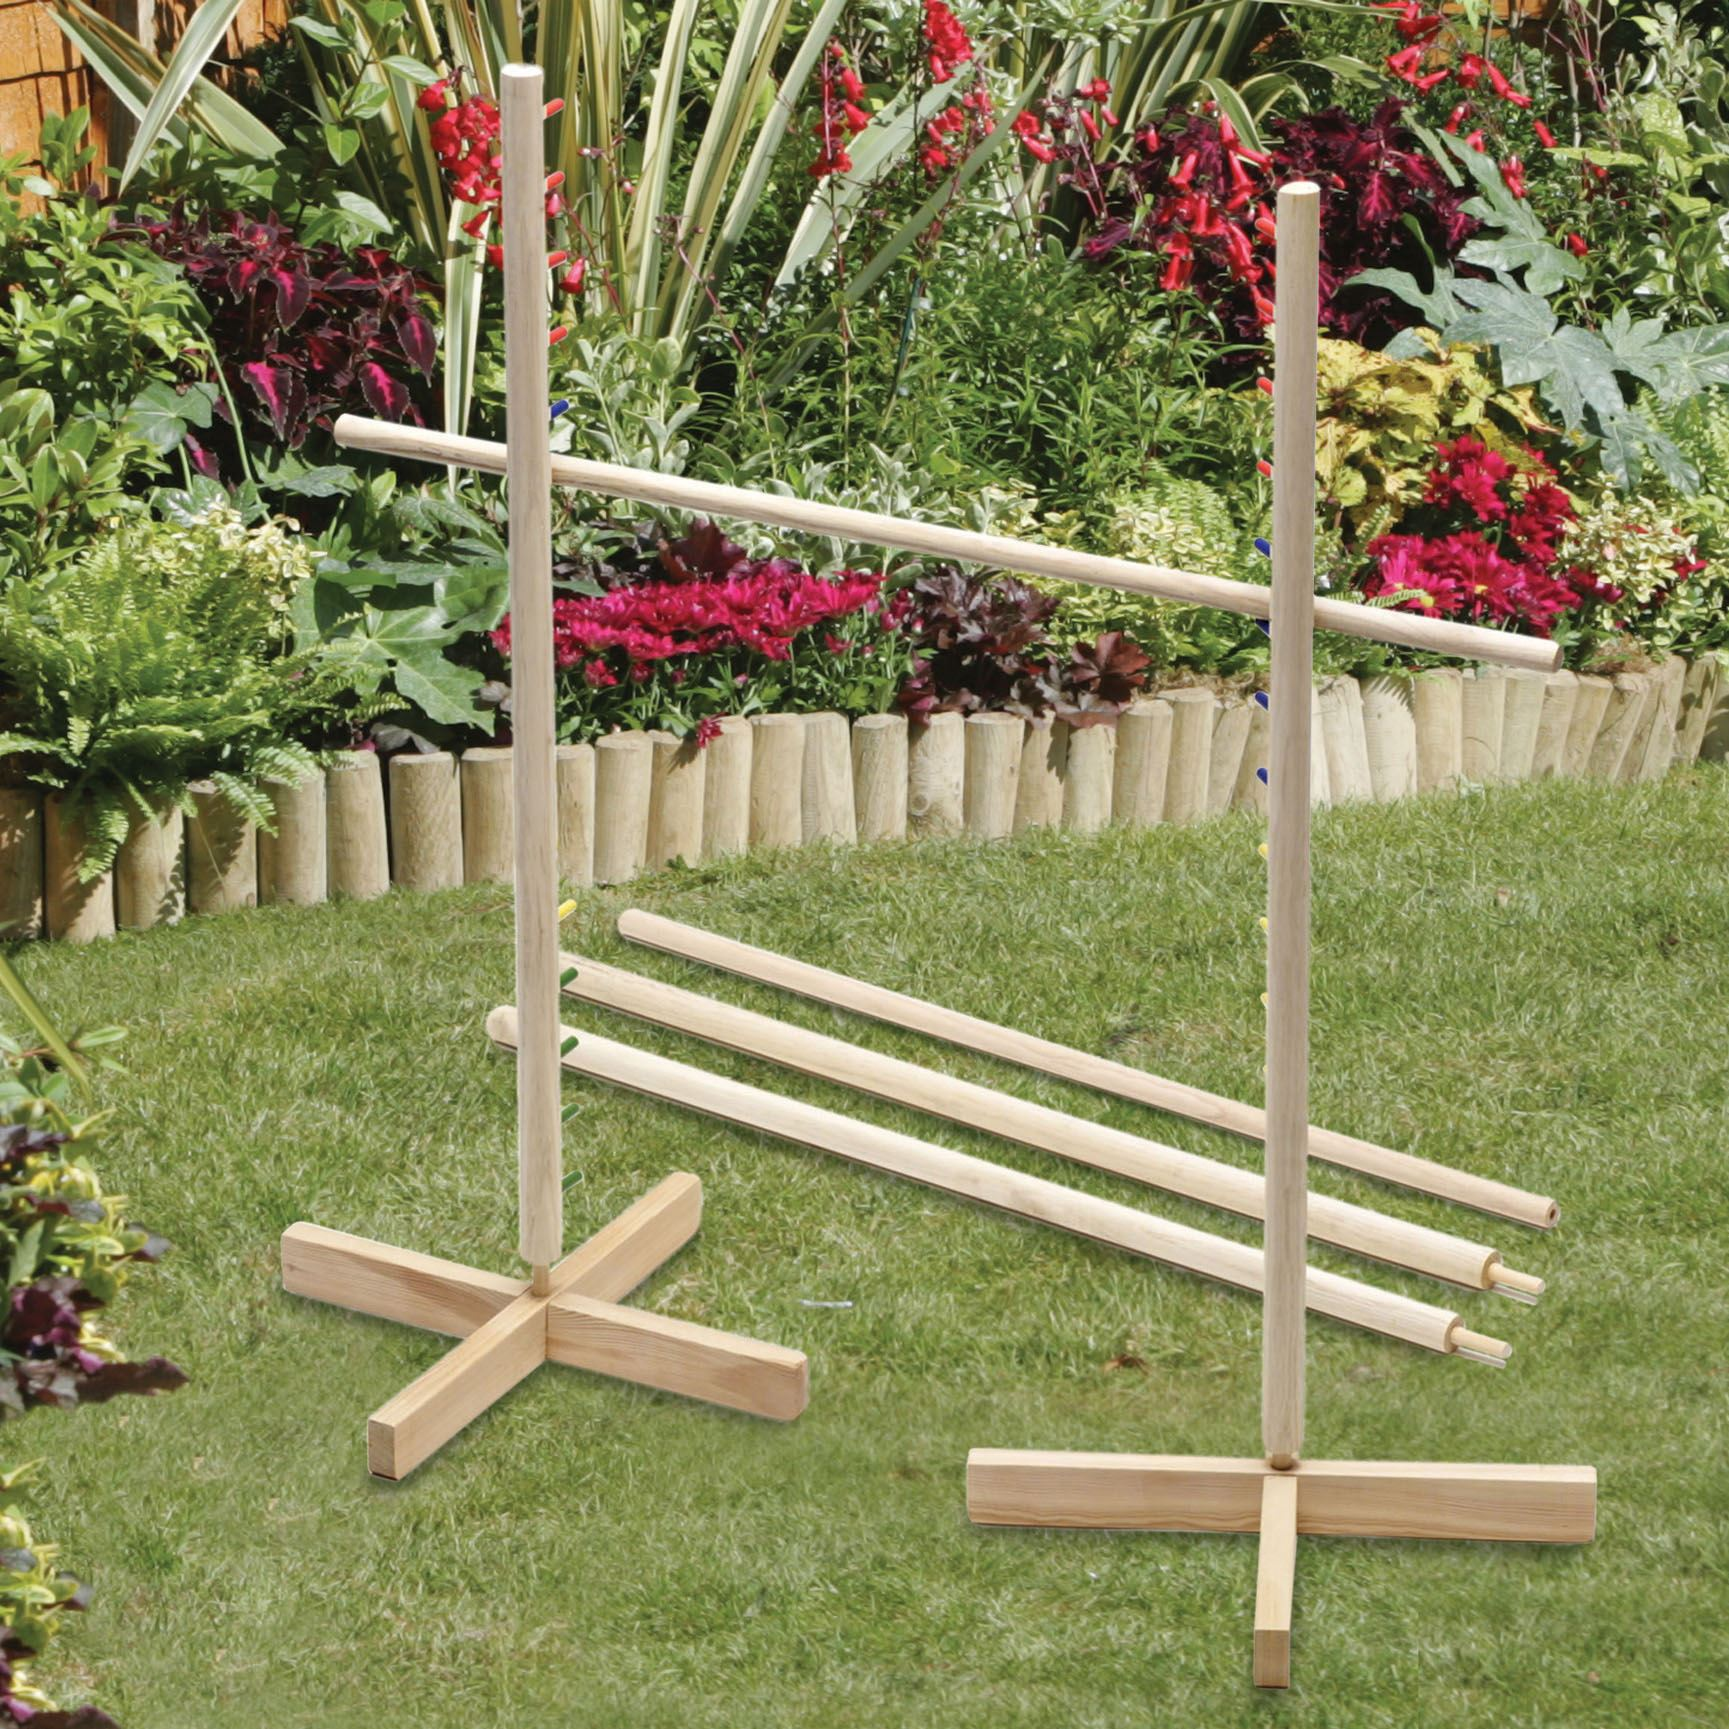 1 7m Wooden Limbo Set Pole Bar Kids Adults Family Garden Party Fun